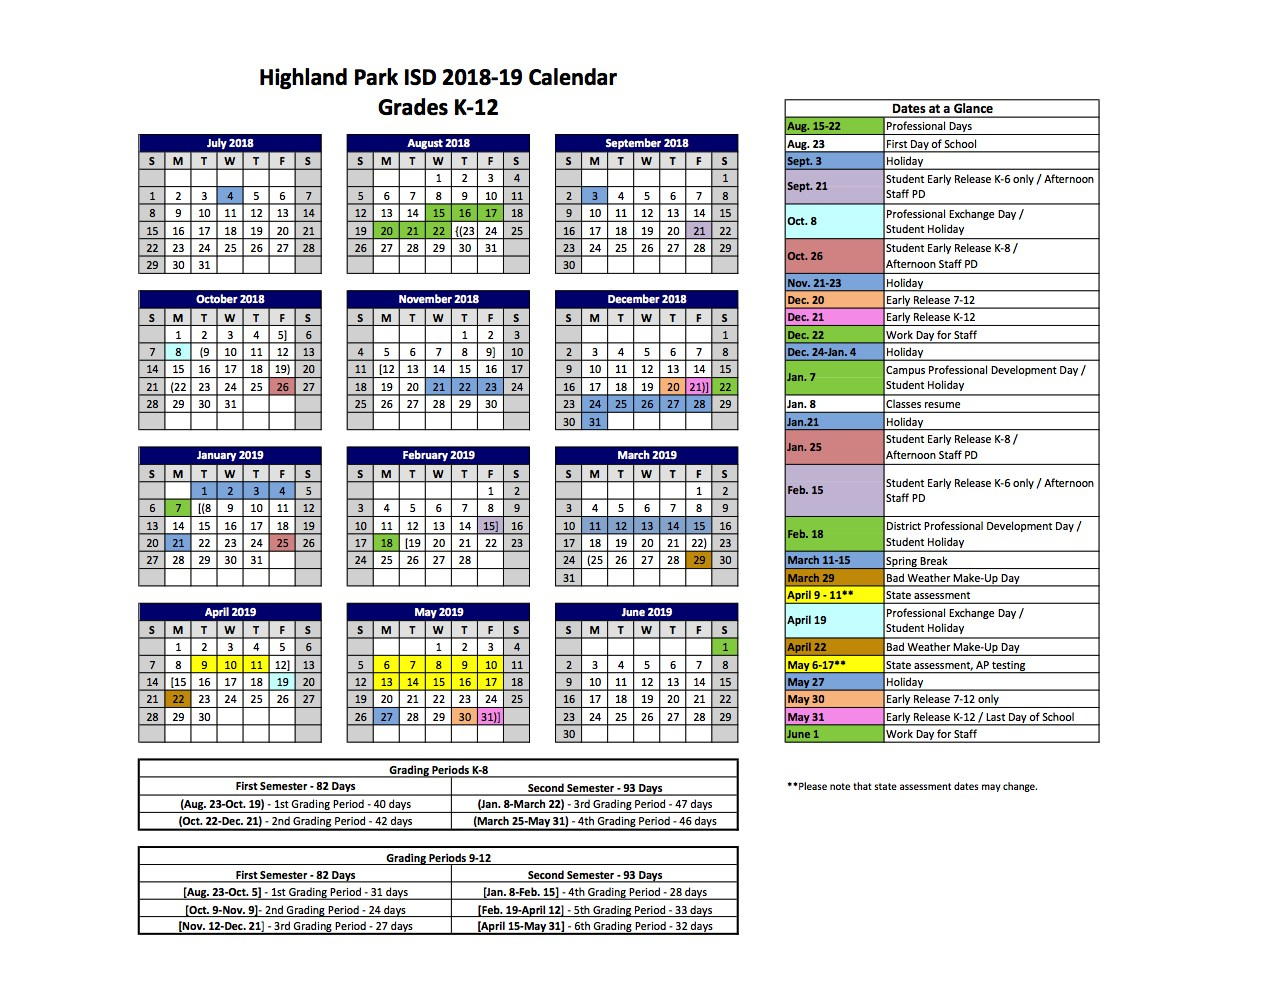 Nj Payroll Calendar 2019 | Payroll Calendars throughout Payroll Calendar Nj